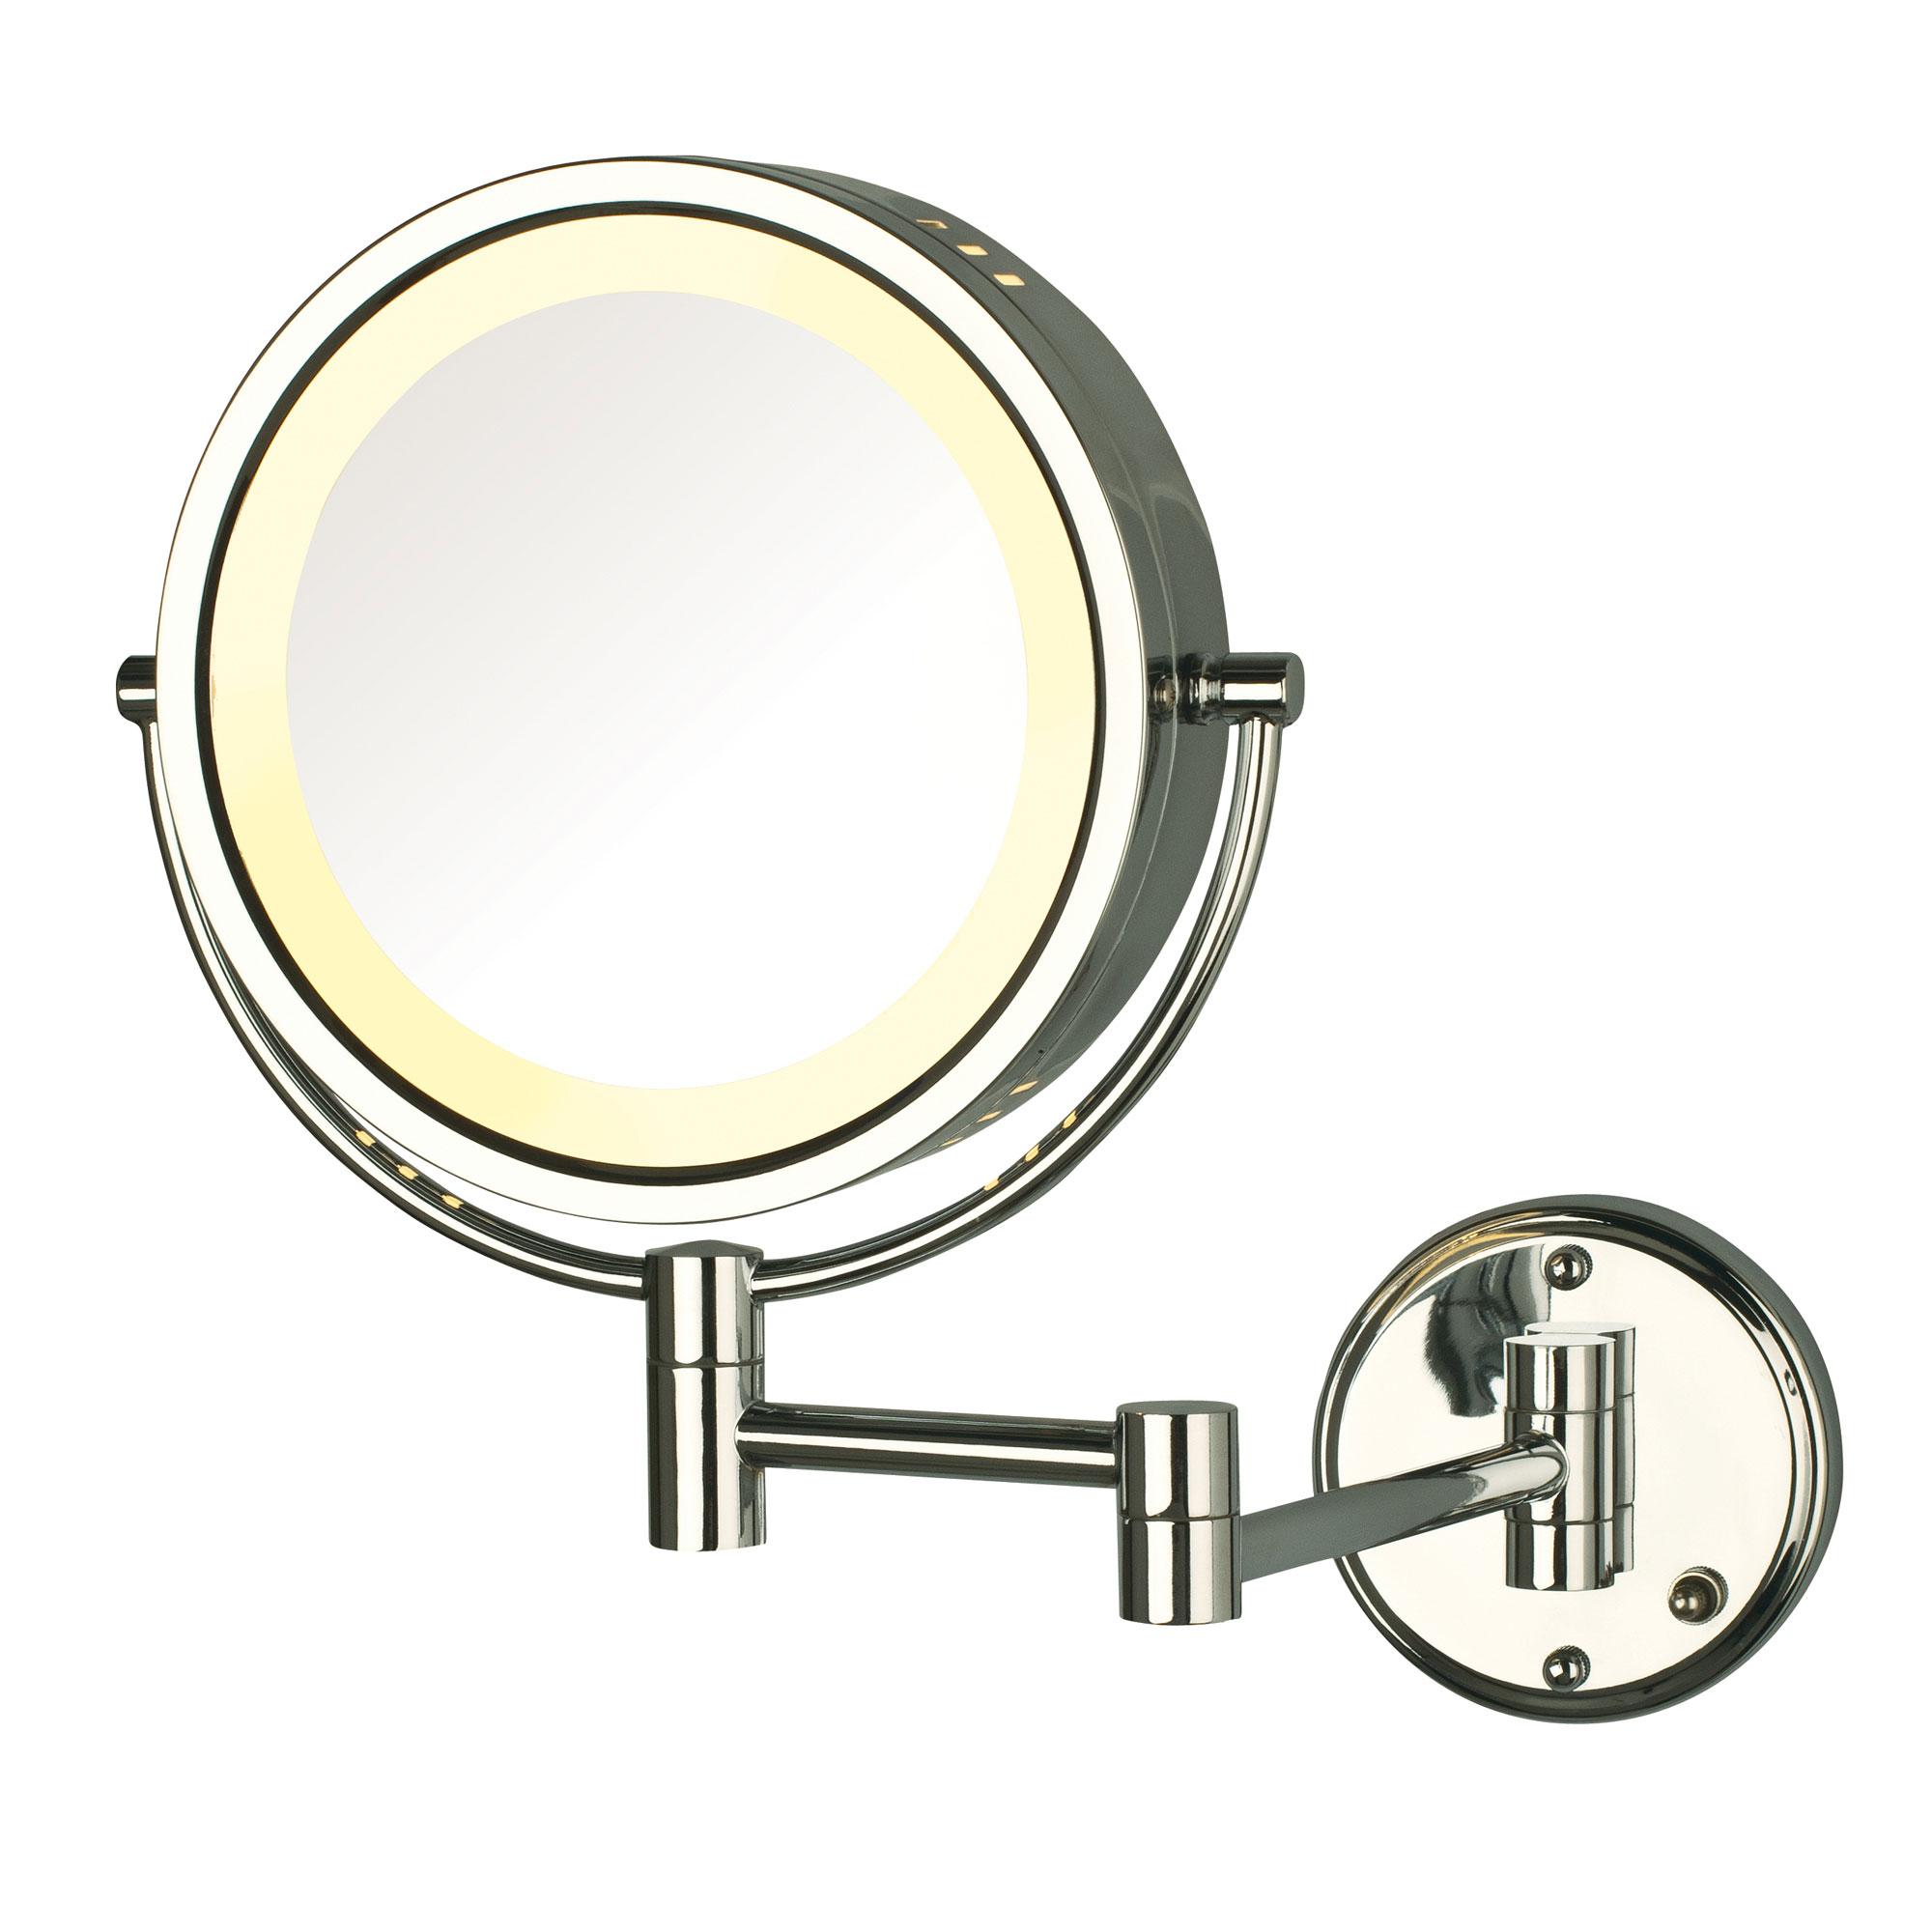 Jerdon Hl75cd 8 5 Quot Lighted Wall Mount Mirror 1x 8x